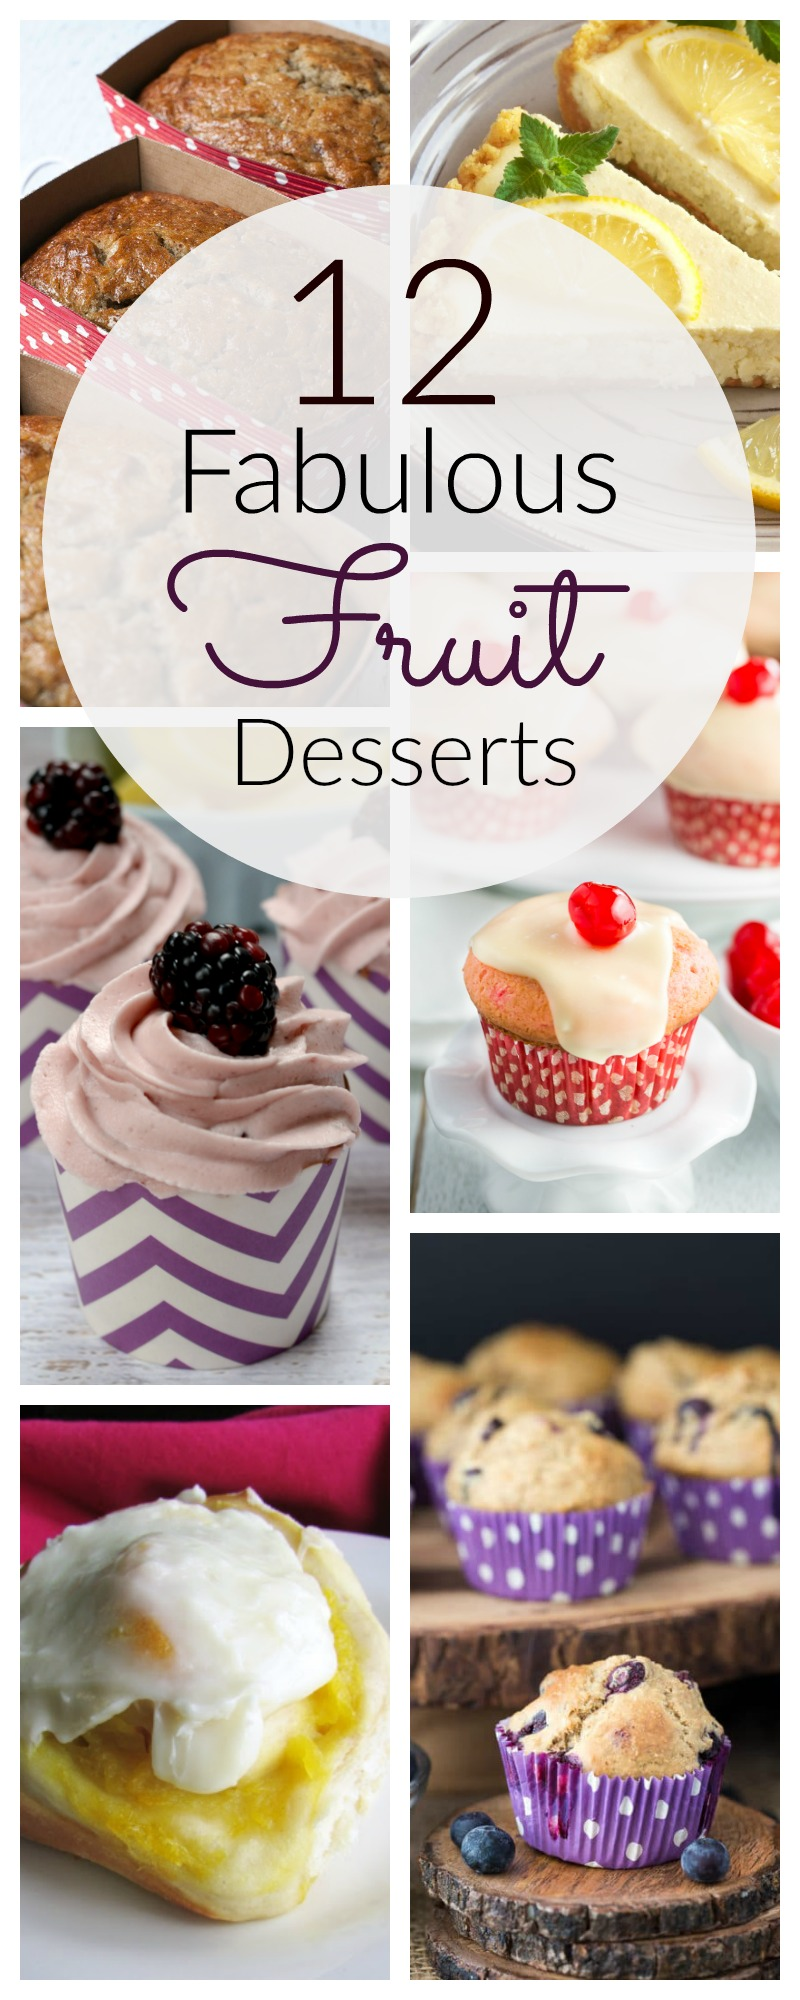 Check out these 12 fabulous fruit desserts. Each recipe has a different fruit flavor and some are even healthy and gluten free! | awonderfulthought.com